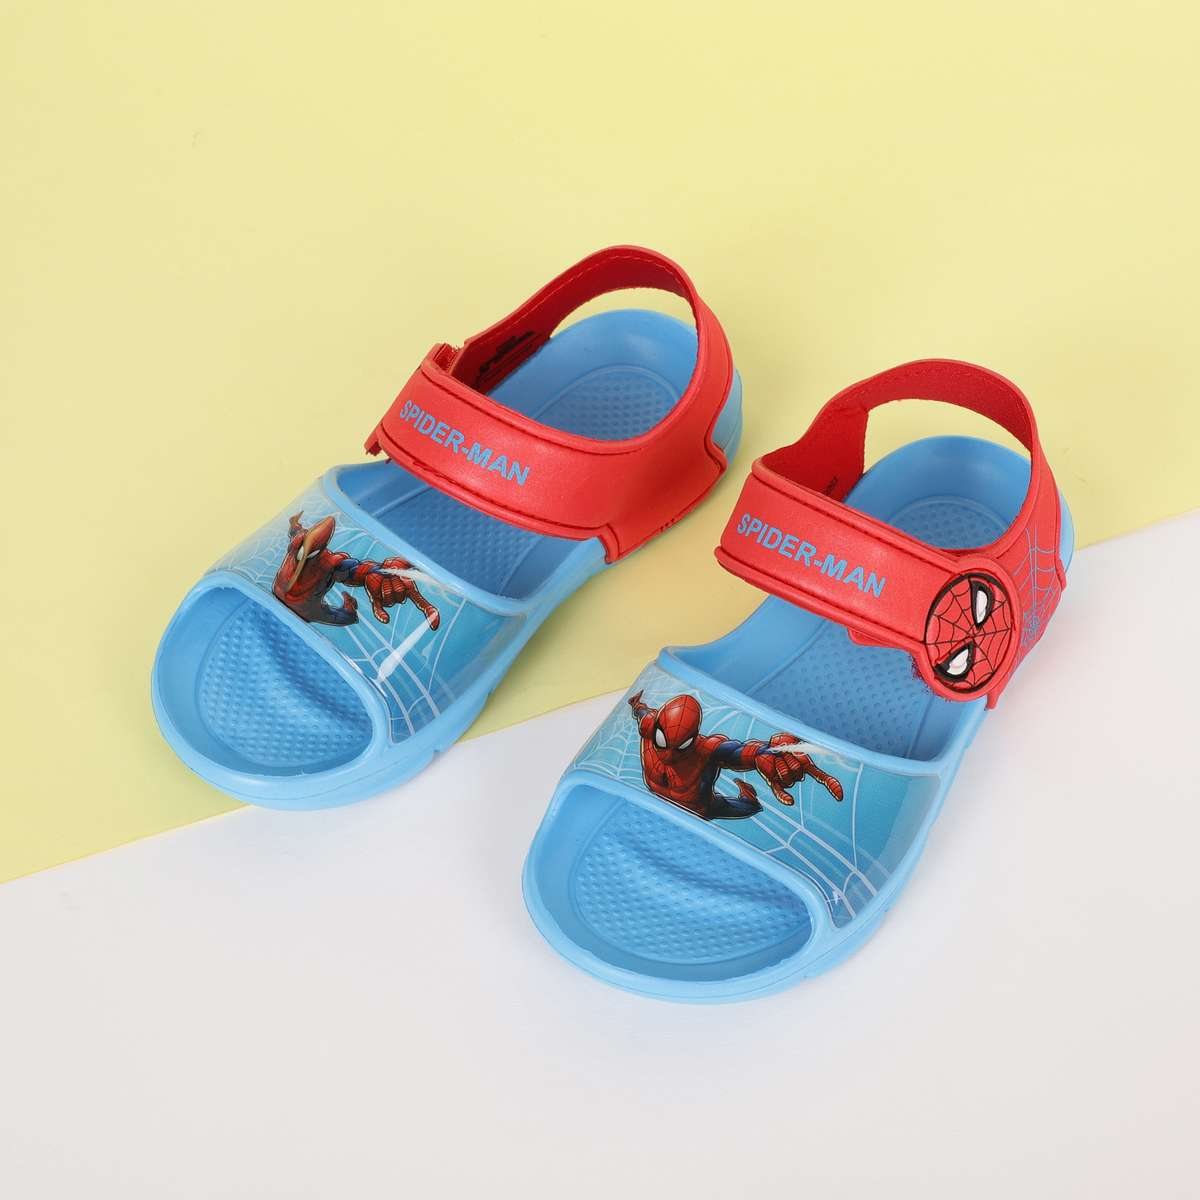 2.FAME FOREVER Boys Spiderman Print Velcro Strap Sandals